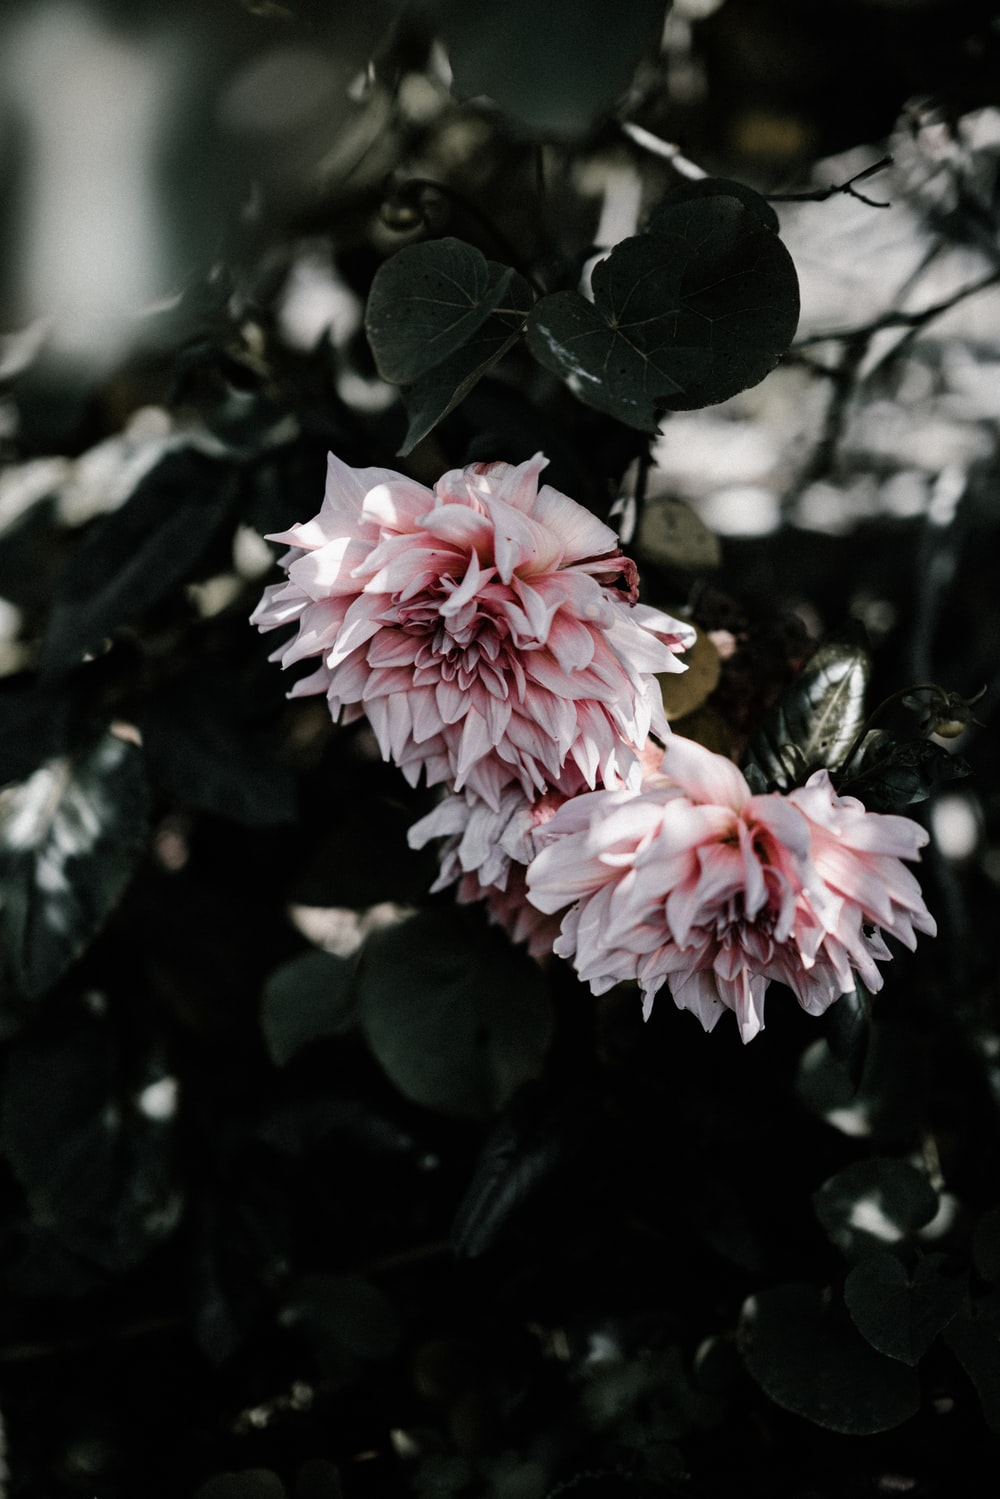 Dahlia flower pictures download free images on unsplash white and pink flowers izmirmasajfo